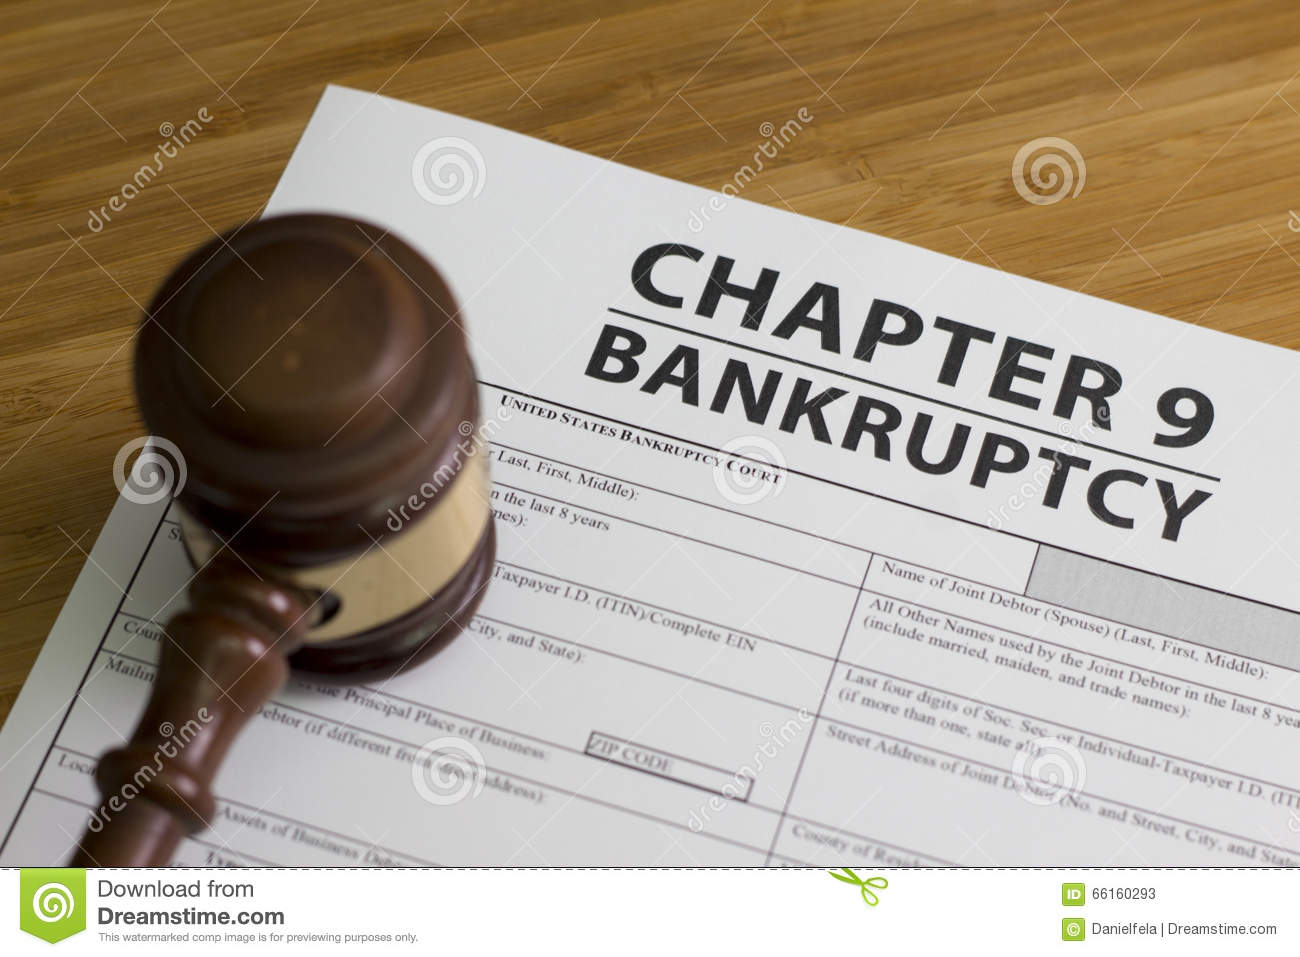 Bankruptcy Chapter 9 Stock Image Image Of Lawyer. Prescription Drug Rehab Kirklands Credit Card. Jordan Family Dentistry Analytics As A Service. Credit Card Processing Fees For Small Business. Mixing Hardwood Floors Allstate Insurance Car. Amica Car Insurance Reviews Sammis Law Firm. Healthcare Administration Jobs In Michigan. Cheapest Payday Advance What Is A Voip Number. Keller Business School Of Management